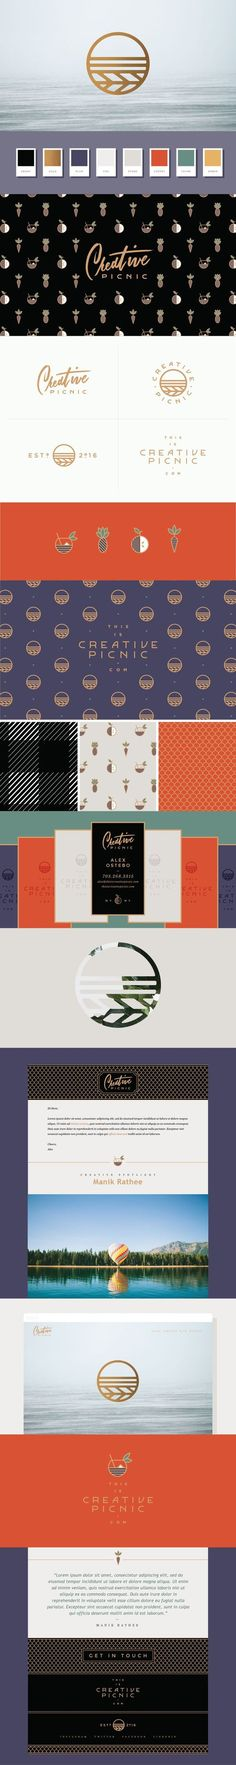 Creative Picnic Branding by Melissa Yeager | Fivestar Branding Agency – Design and Branding Agency & Curated Inspiration Gallery